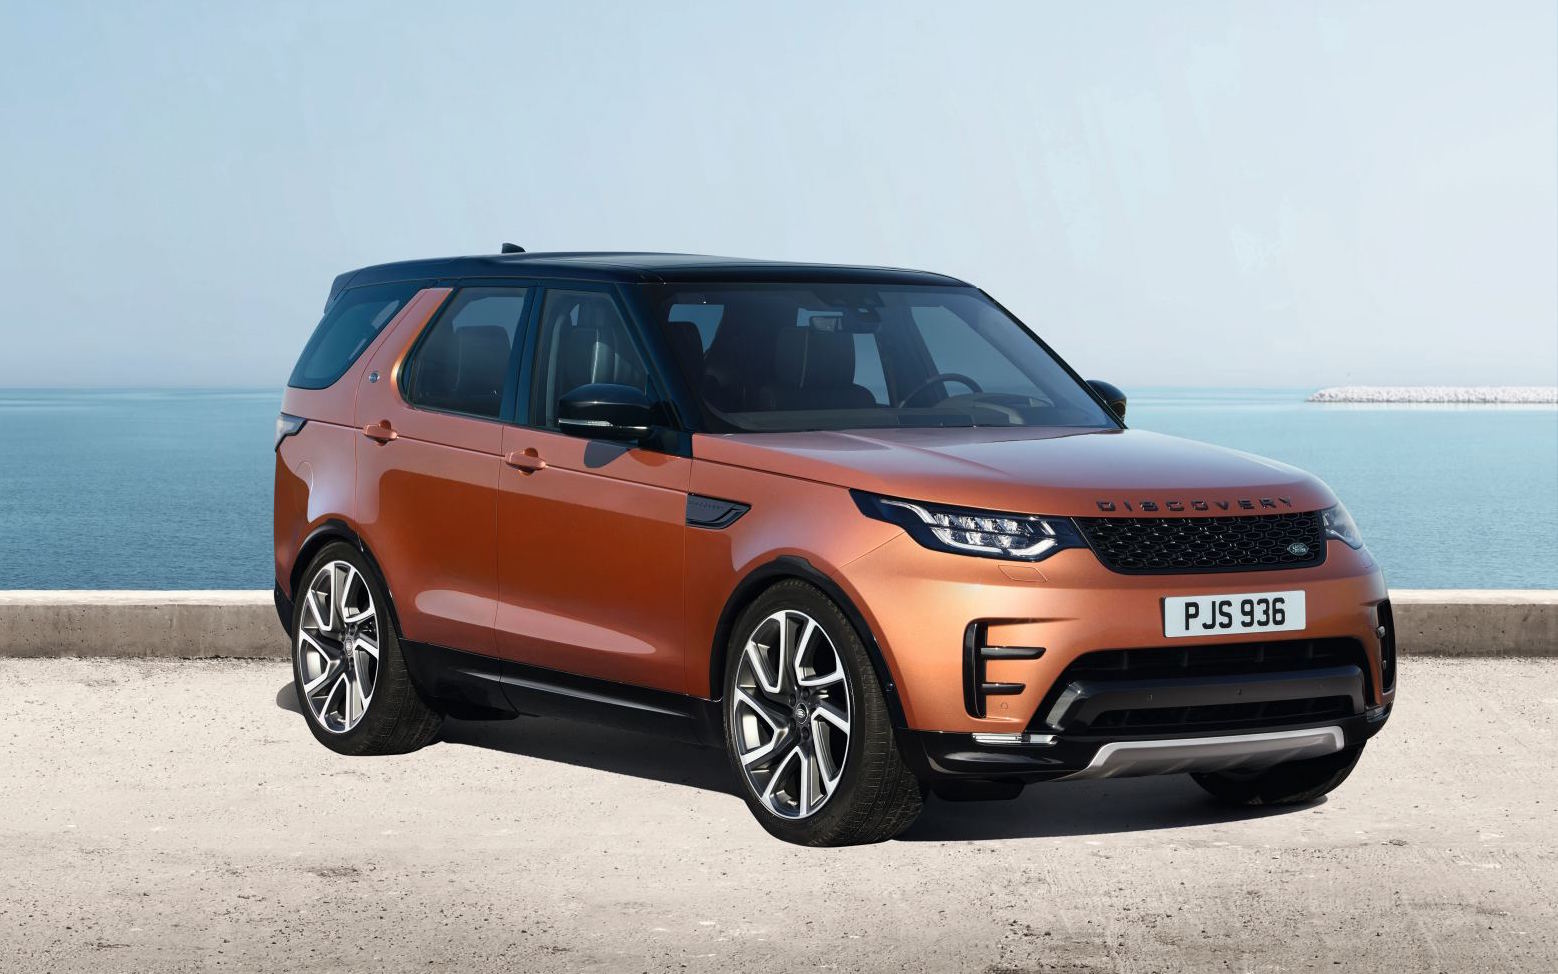 news land rover s all new discovery breaks cover in paris. Black Bedroom Furniture Sets. Home Design Ideas